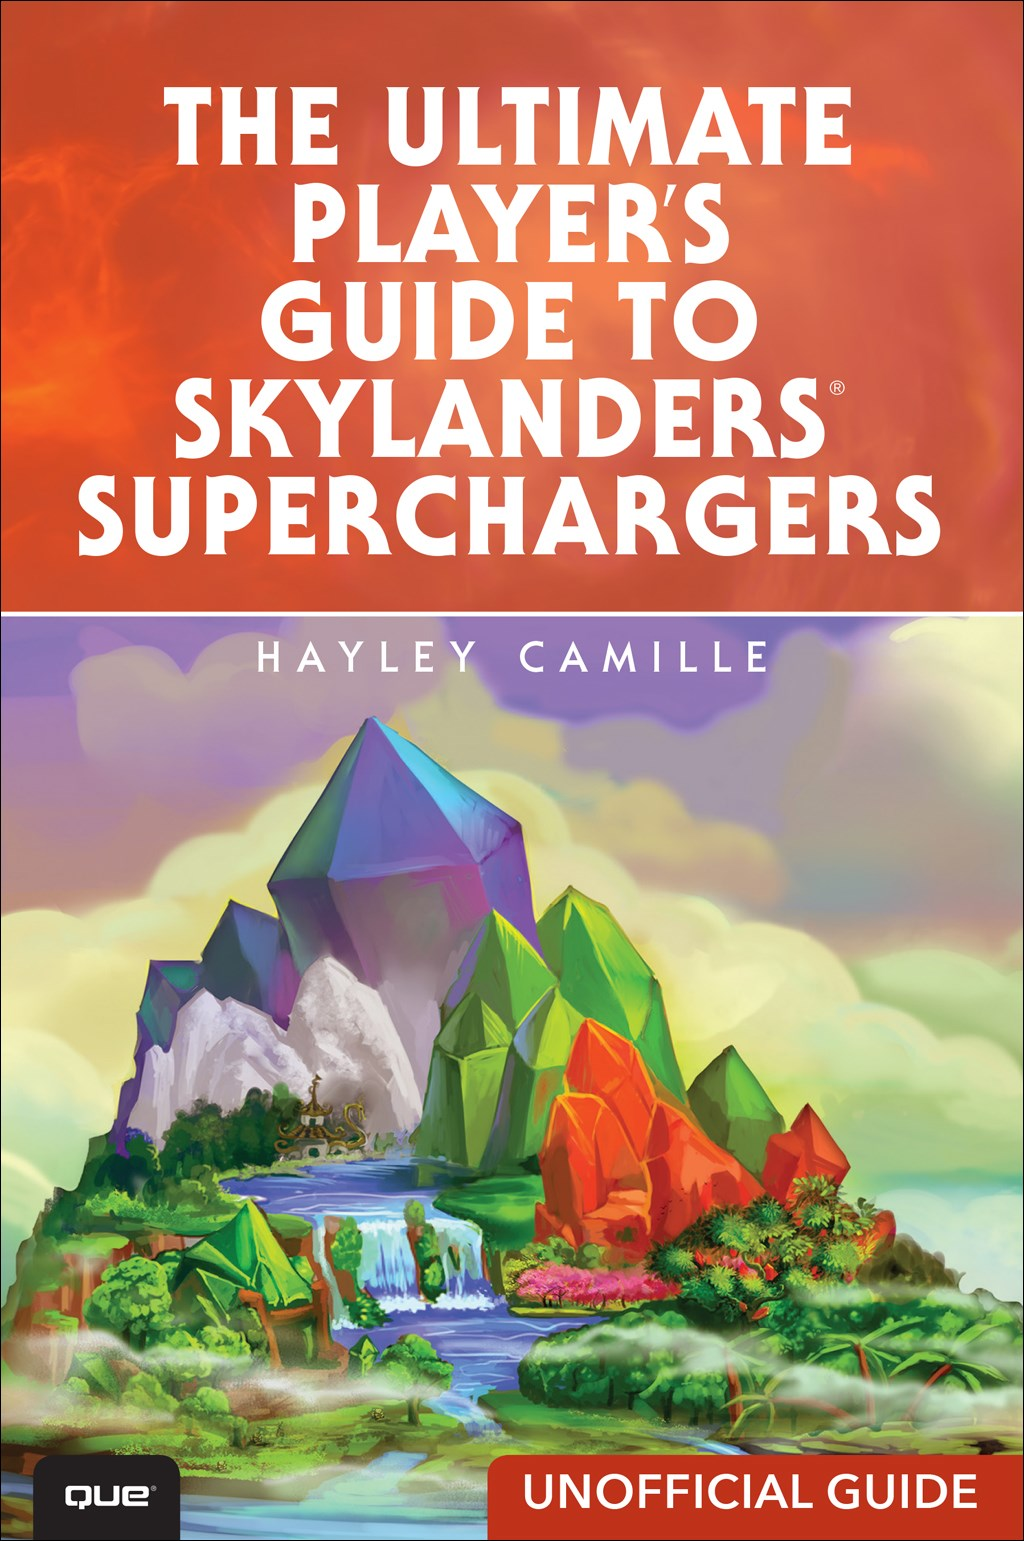 Ultimate Player's Guide to Skylanders SuperChargers (Unofficial Guide), The 9780134423661